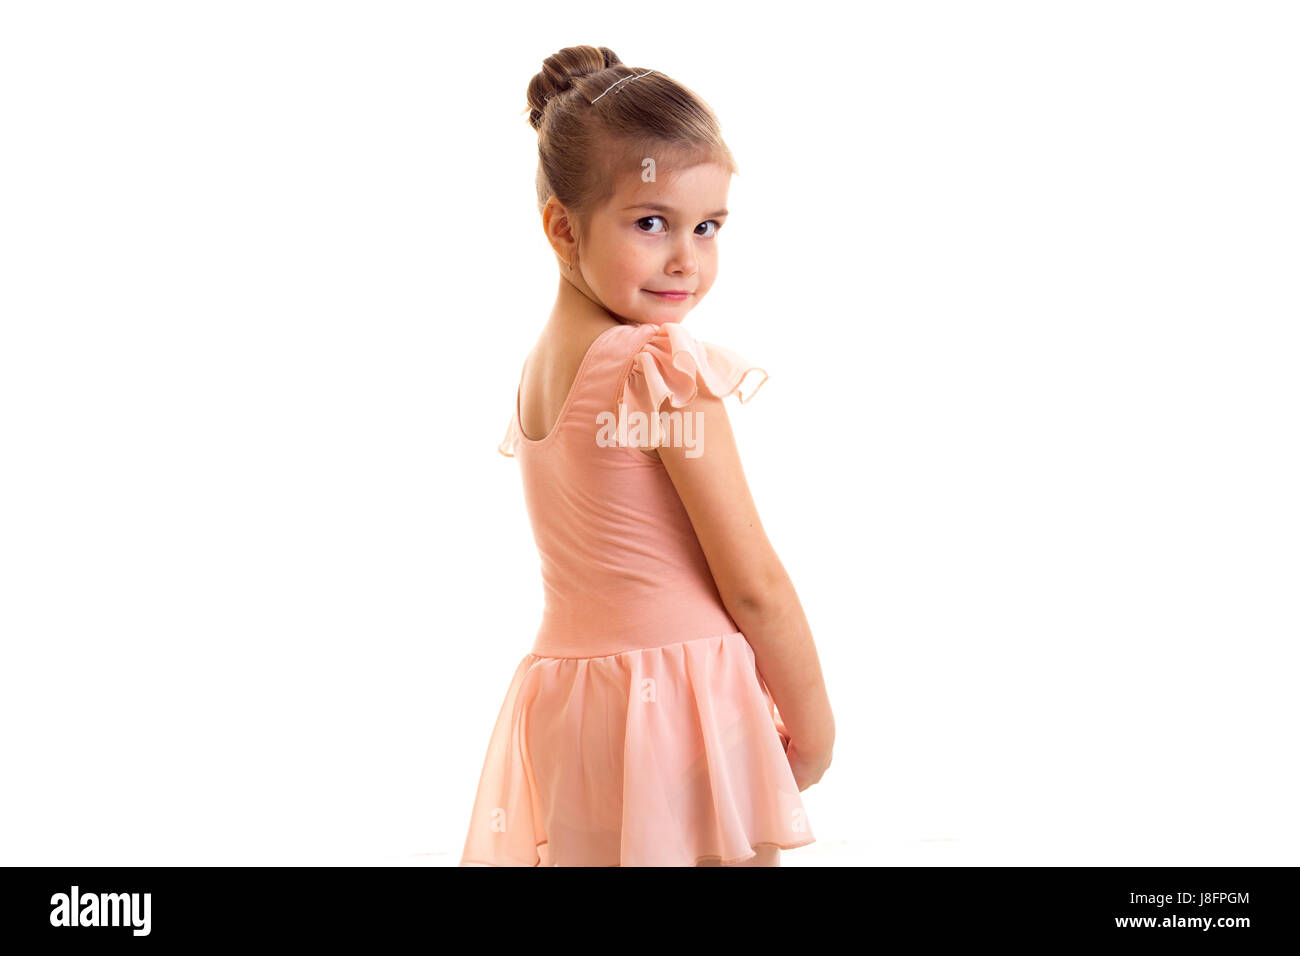 187cbf86881c Sad little girl in pink dress with bundle dancing on white background in  studio